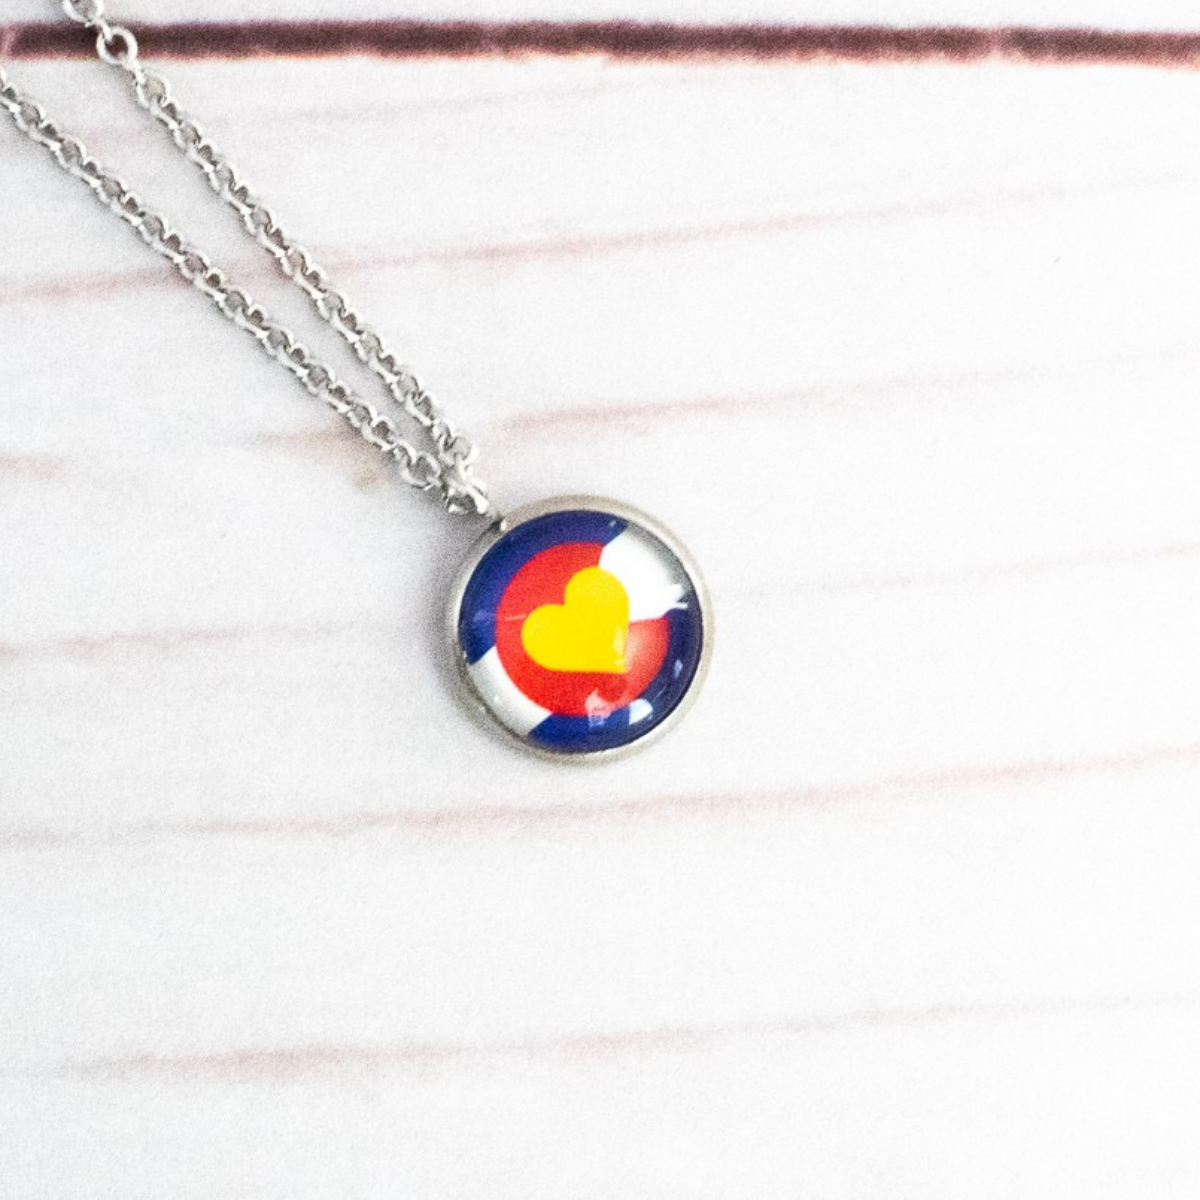 COLORADO HEART NECKLACE